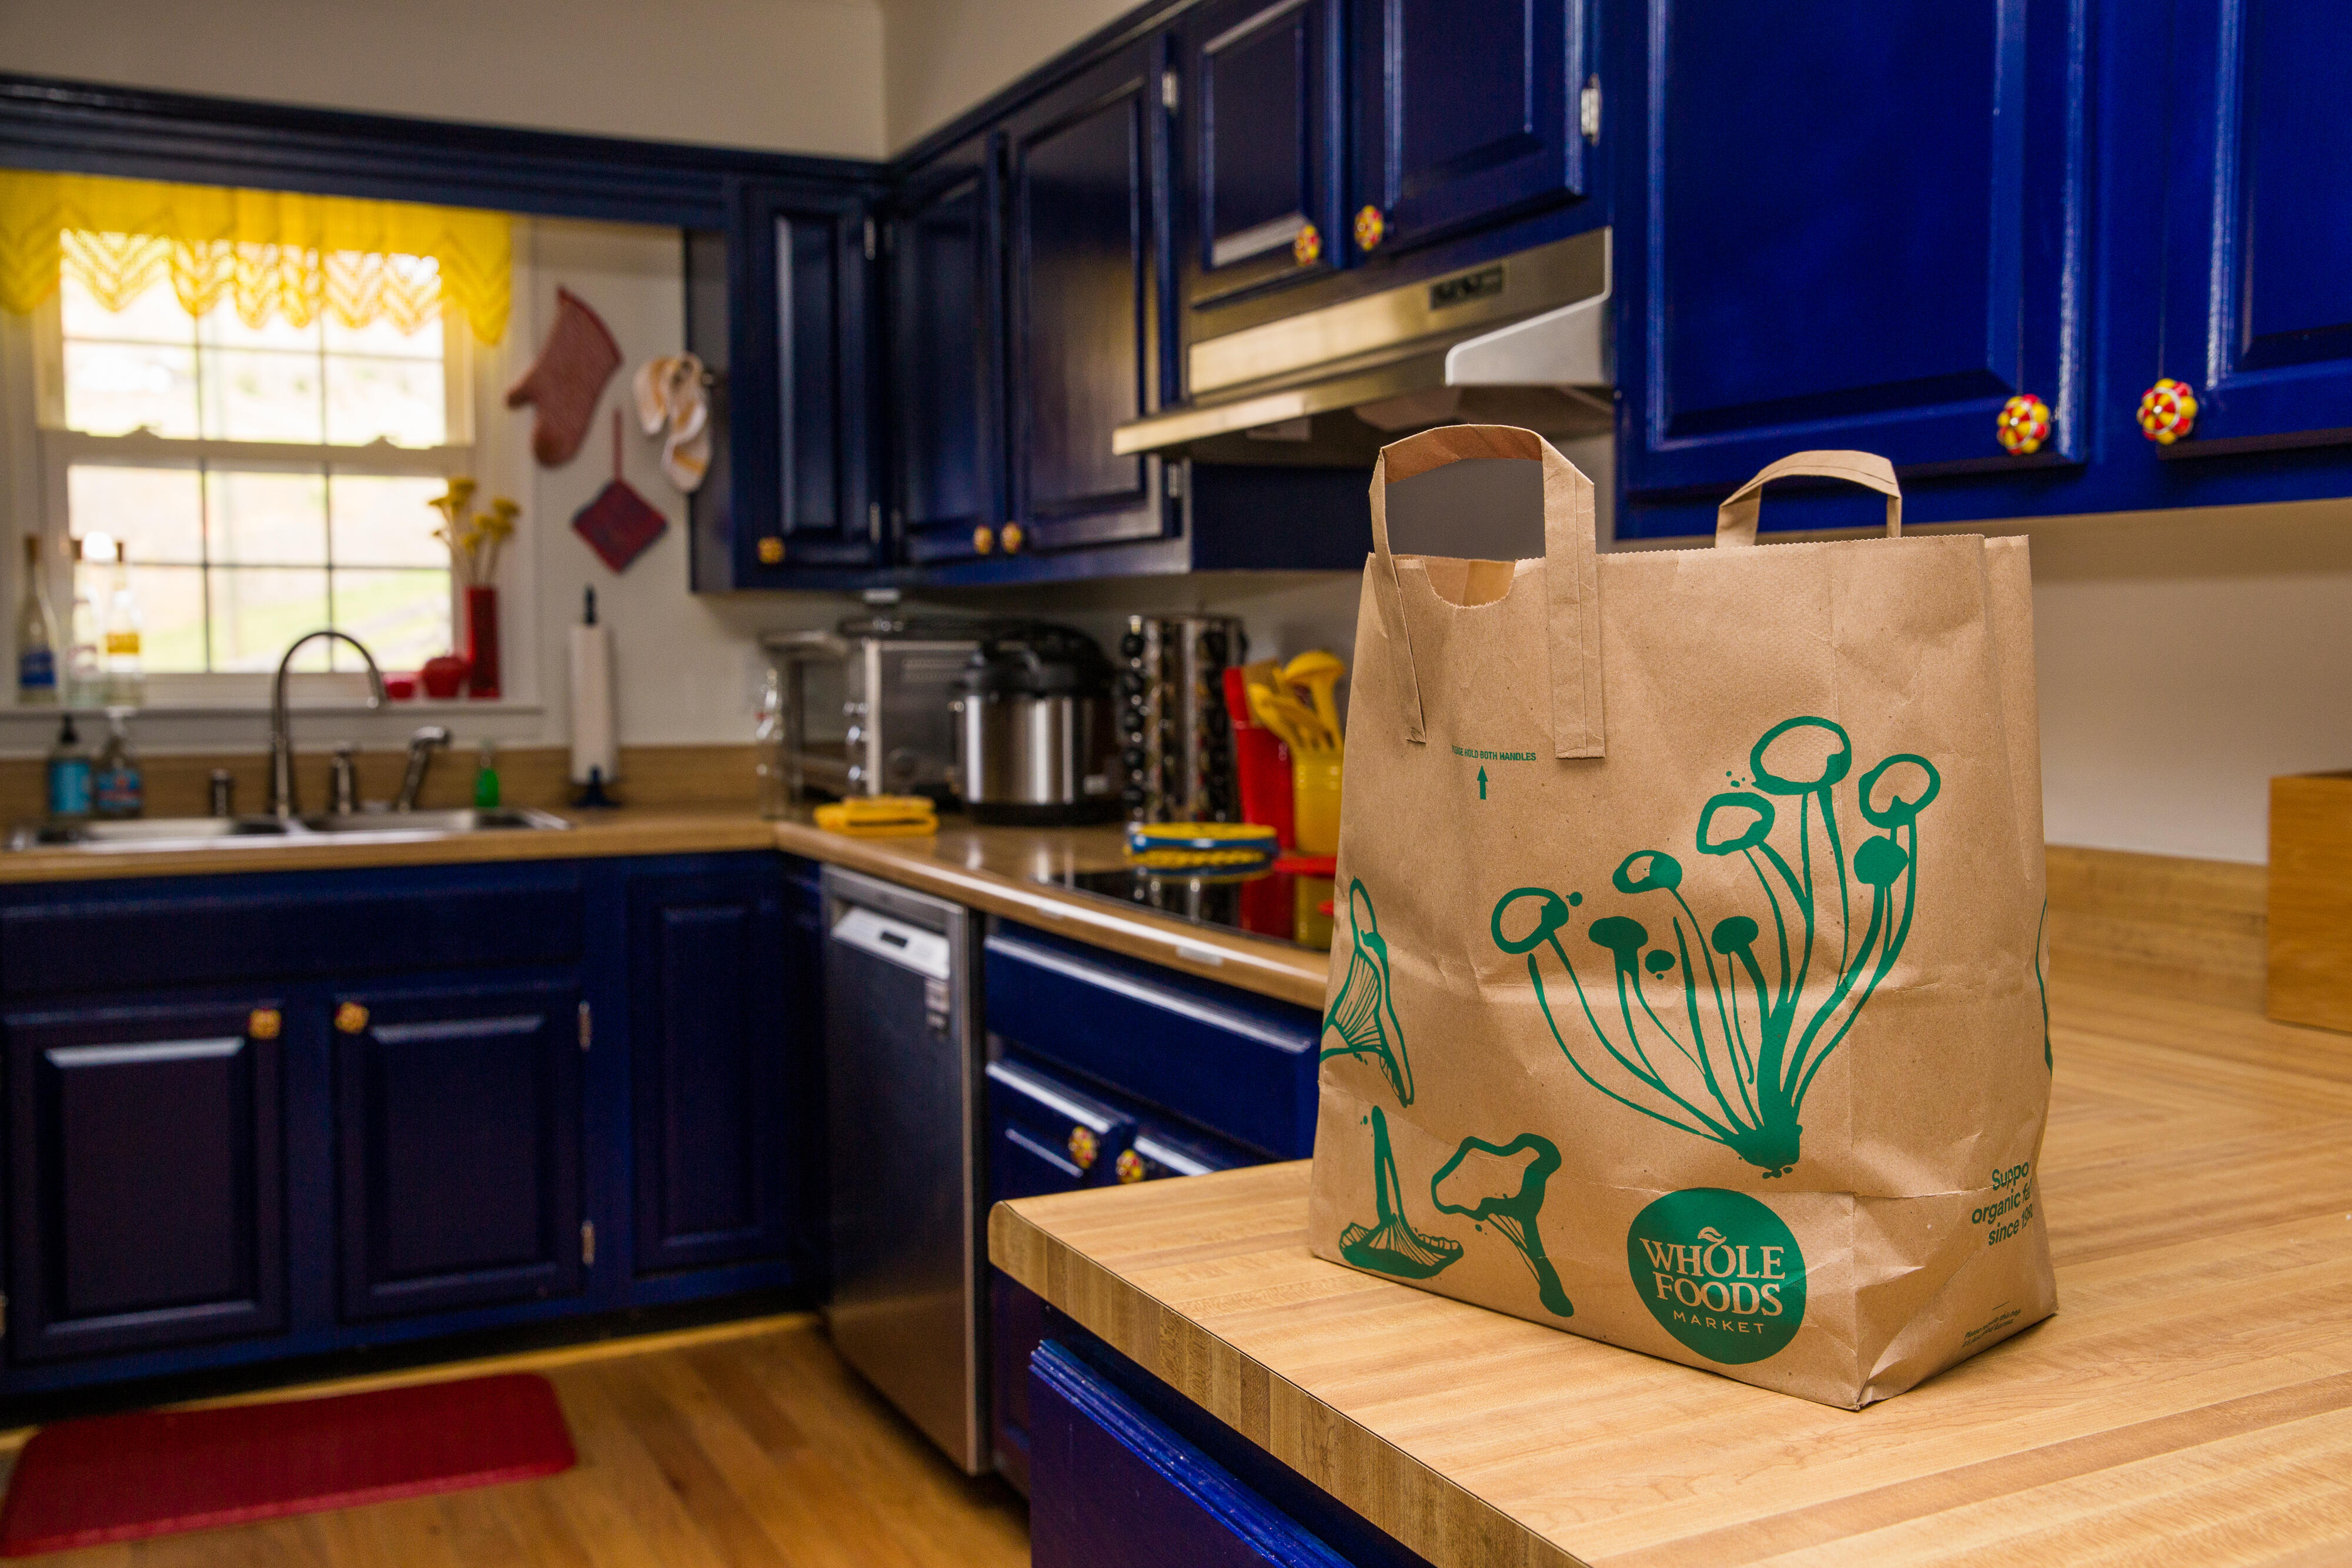 09-bag-of-groceries-at-home-whole-foods-paper